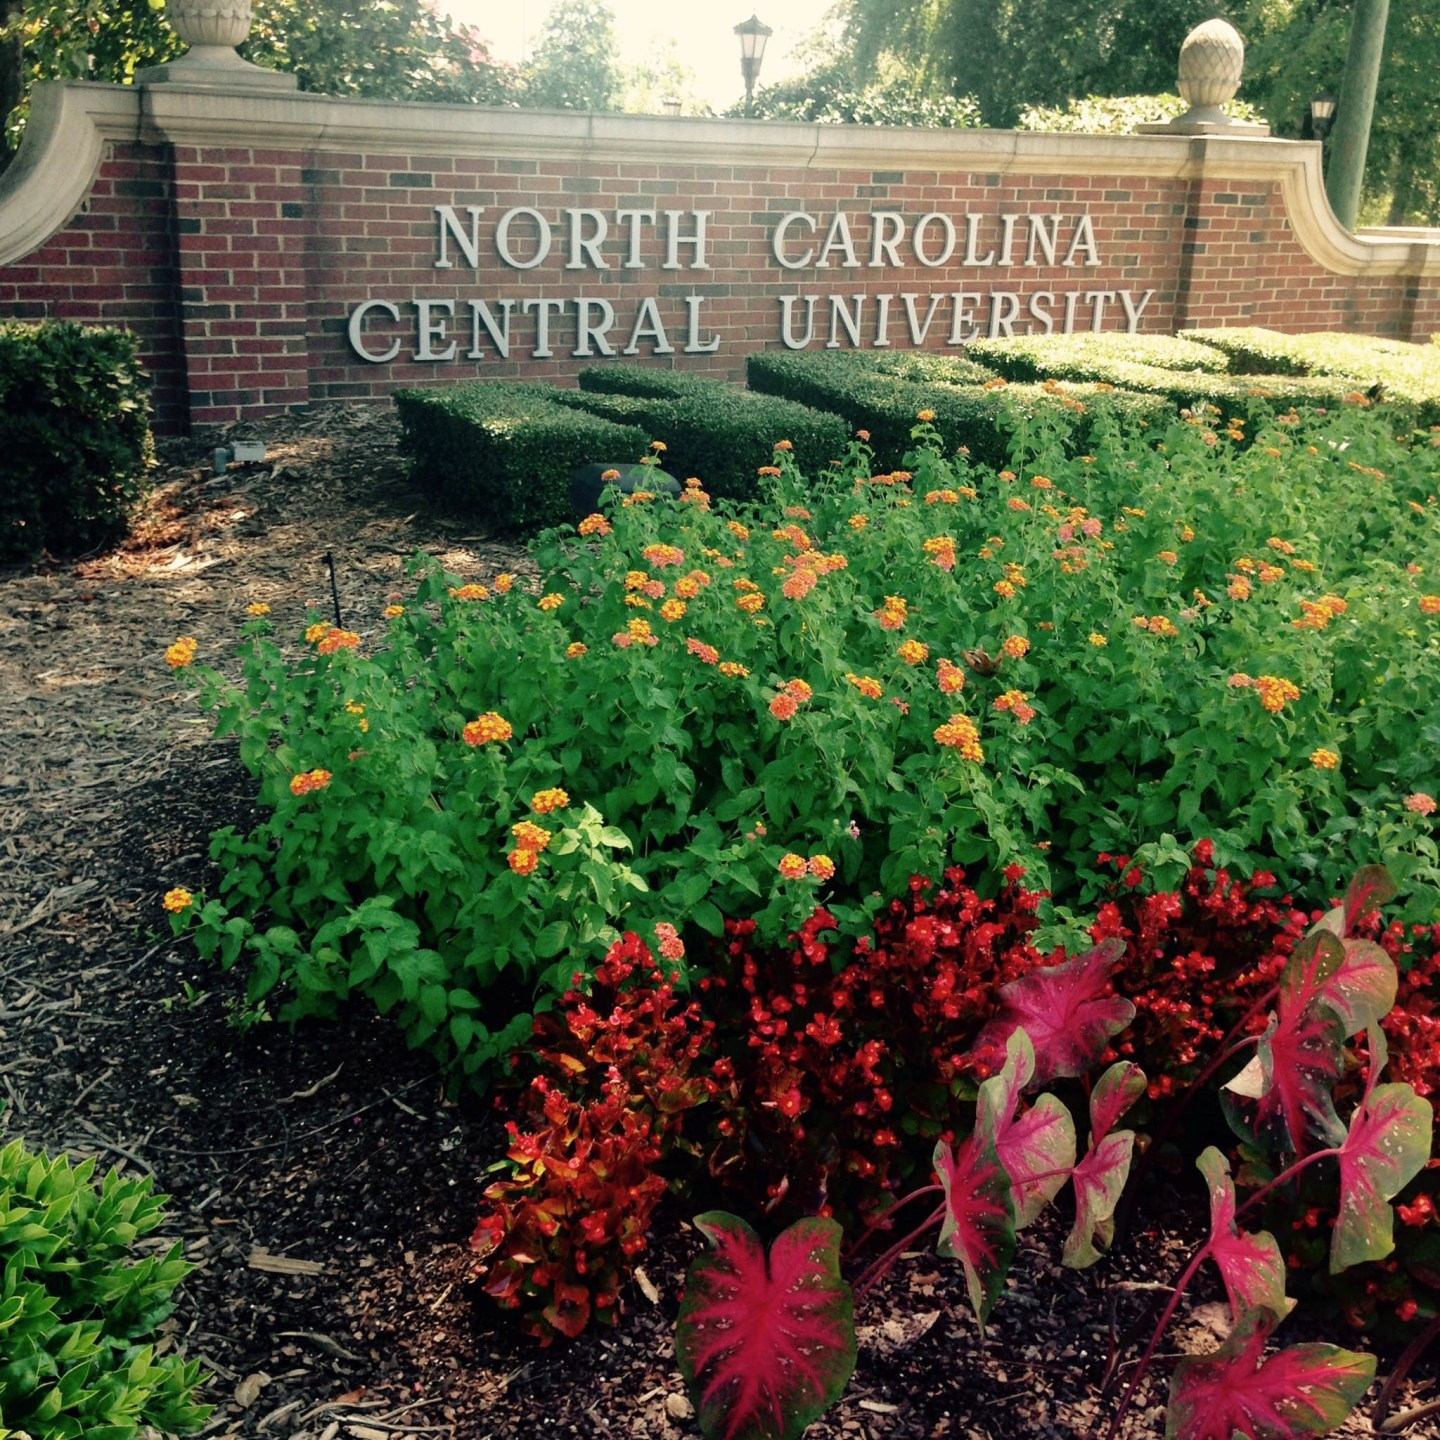 CITY08_NC-Central-University-sign_DiscoverDurham2015 Durham, NC Travel Guide: Black Southern Belle Edition